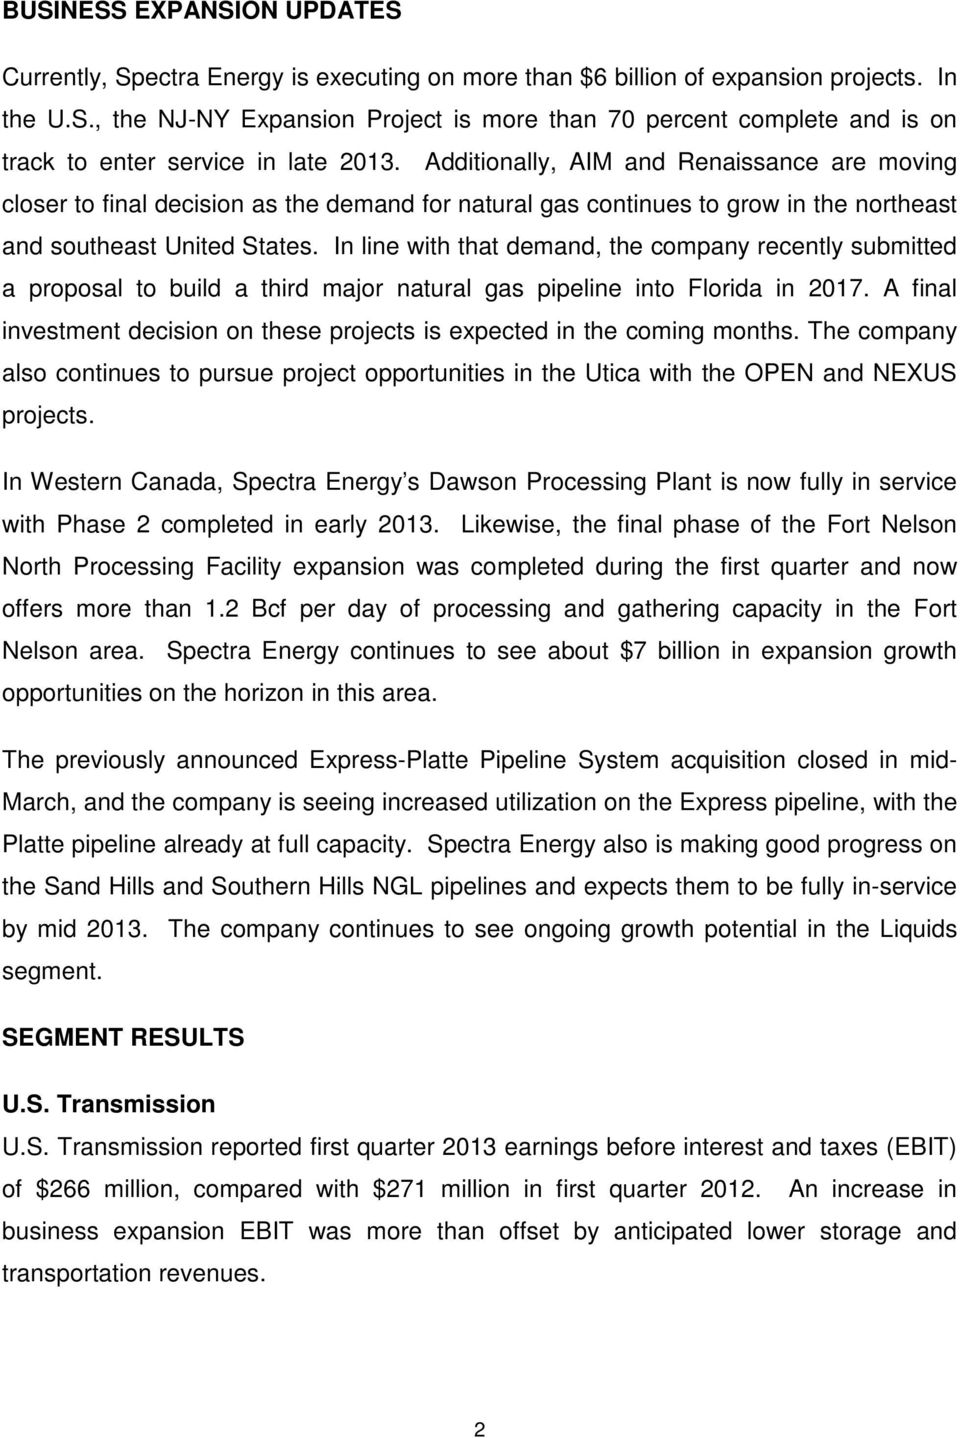 In line with that demand, the company recently submitted a proposal to build a third major natural gas pipeline into Florida in 2017.